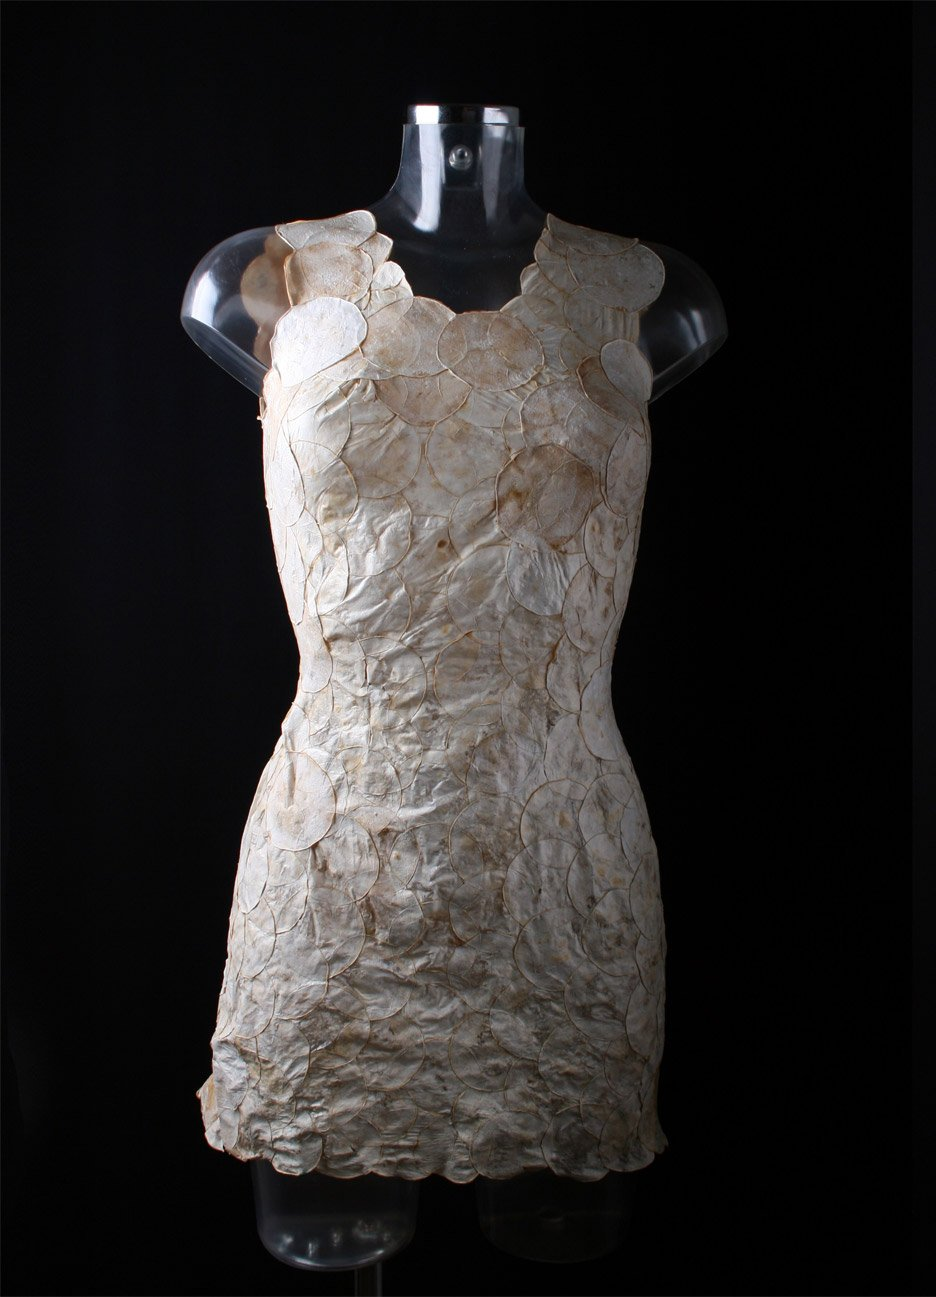 Aniela Hoitink creates dress from mushroom mycelium